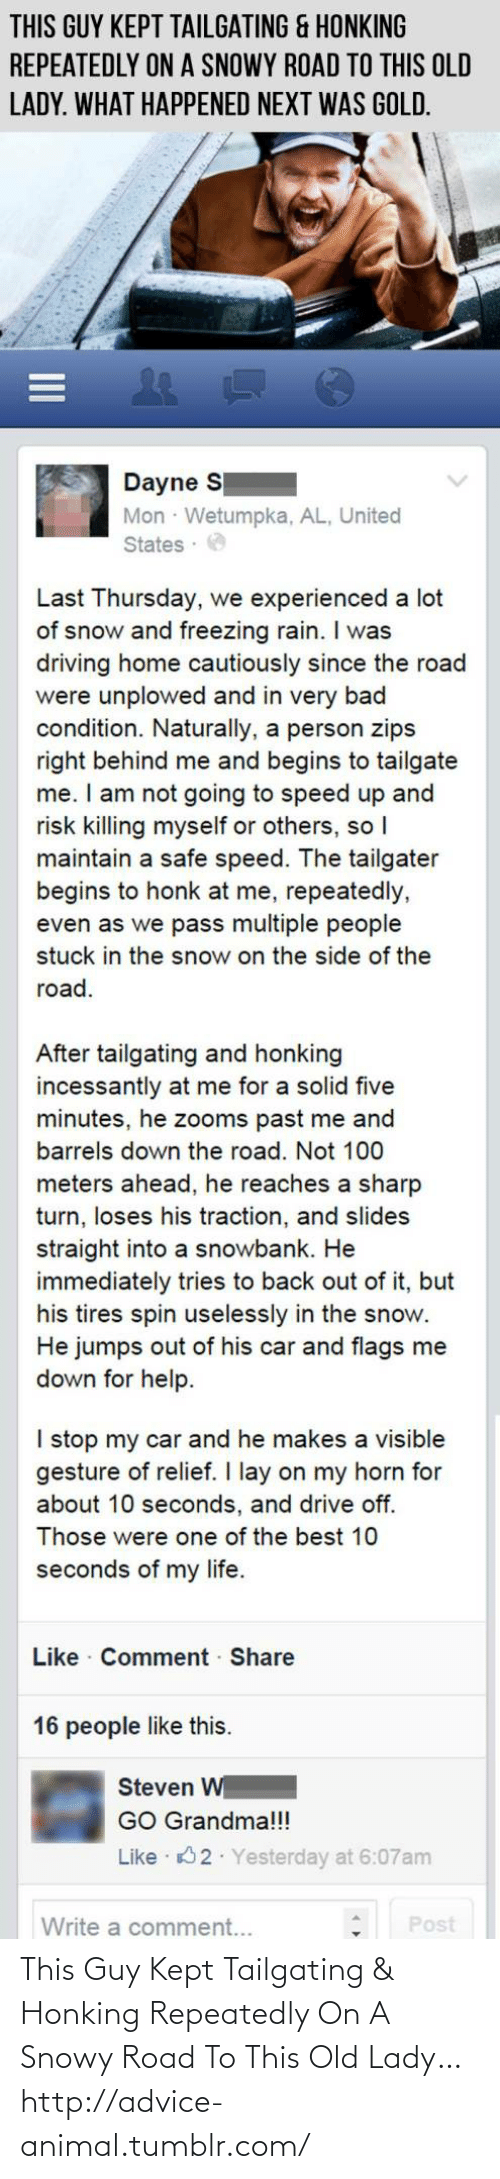 tailgating: This Guy Kept Tailgating & Honking Repeatedly On A Snowy Road To This Old Lady…http://advice-animal.tumblr.com/